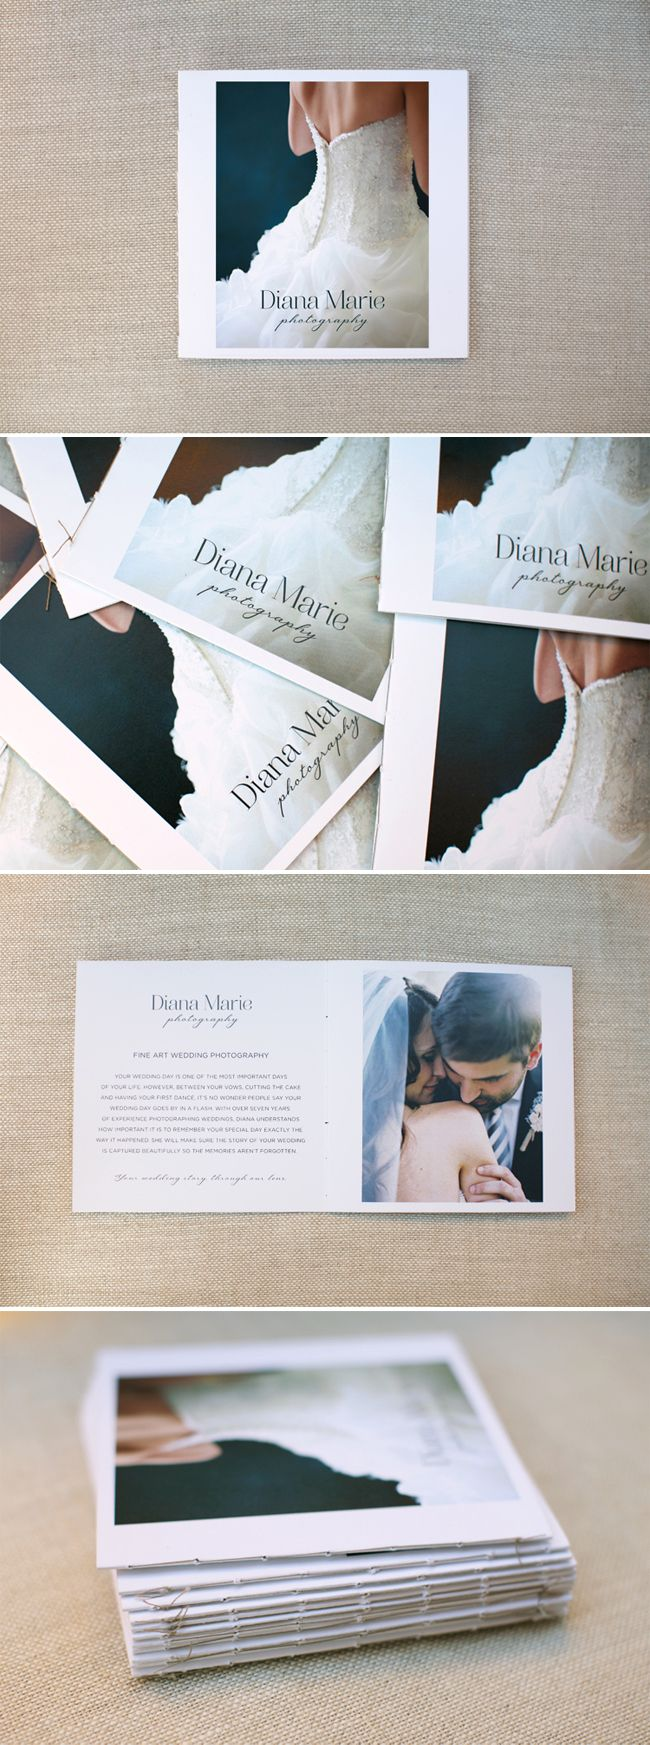 Brochure Inspiration // Matte paper, hand binding with cotton thread, rough edges, artistic and clean.